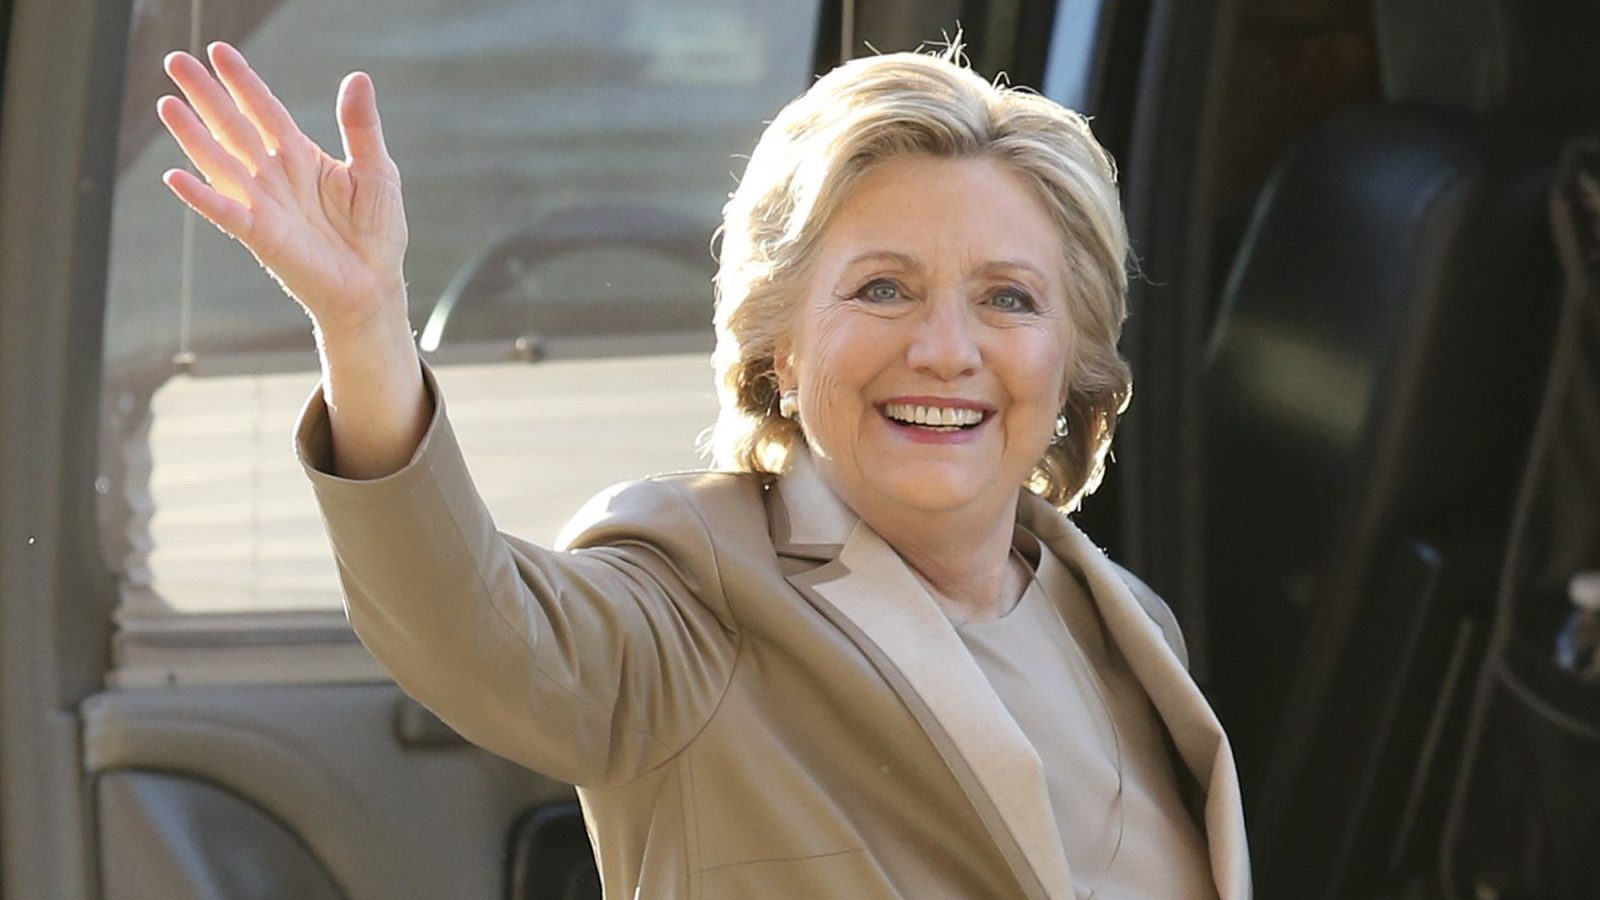 Democratic presidential candidate Hillary Clinton waves as she arrives to vote at her polling place in Chappaqua, N.Y., Tuesday, Nov. 8, 2016.